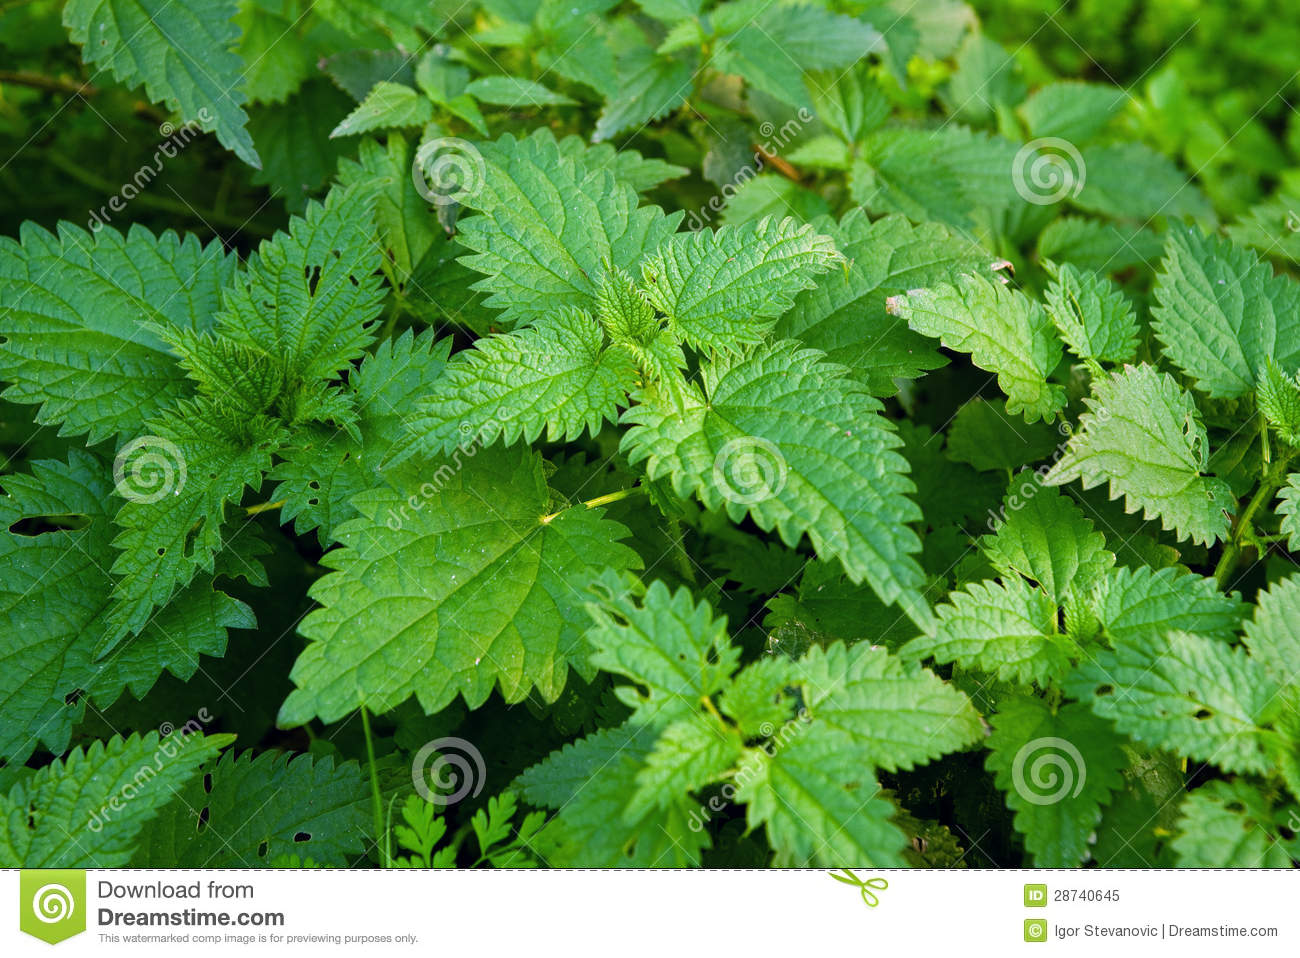 Natural Remedy For Stinging Nettle